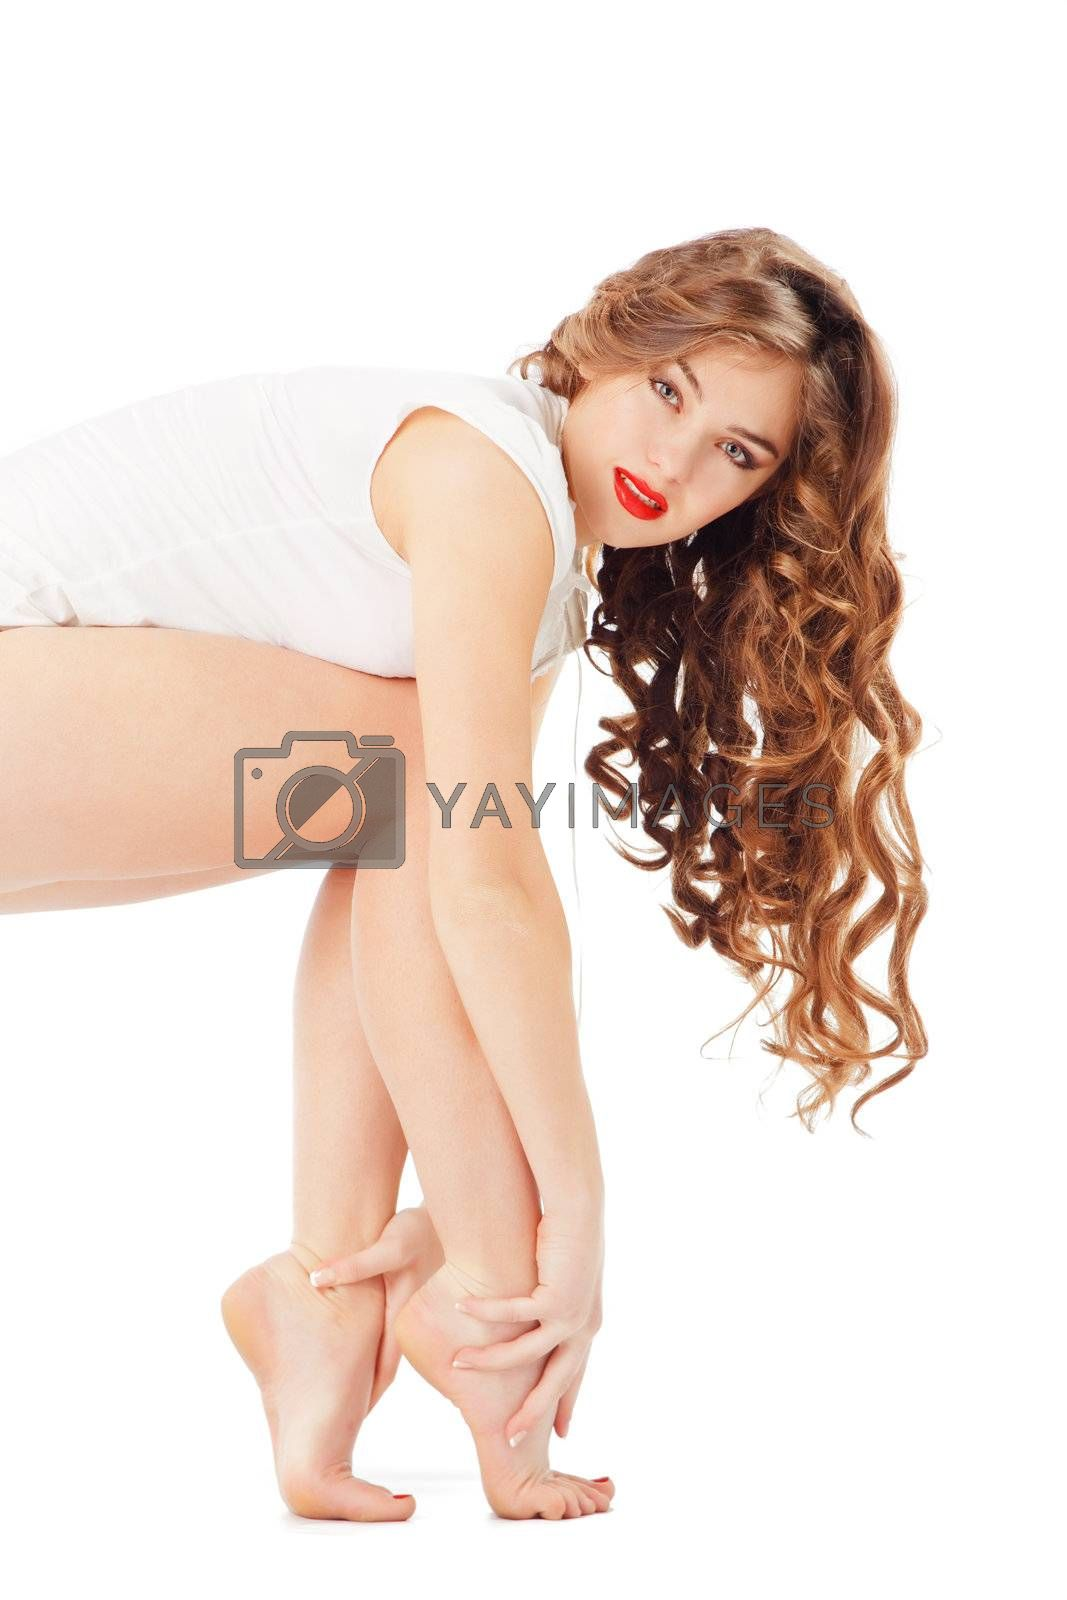 Studio shot of beautiful sexy woman showing her legs and long curly hair